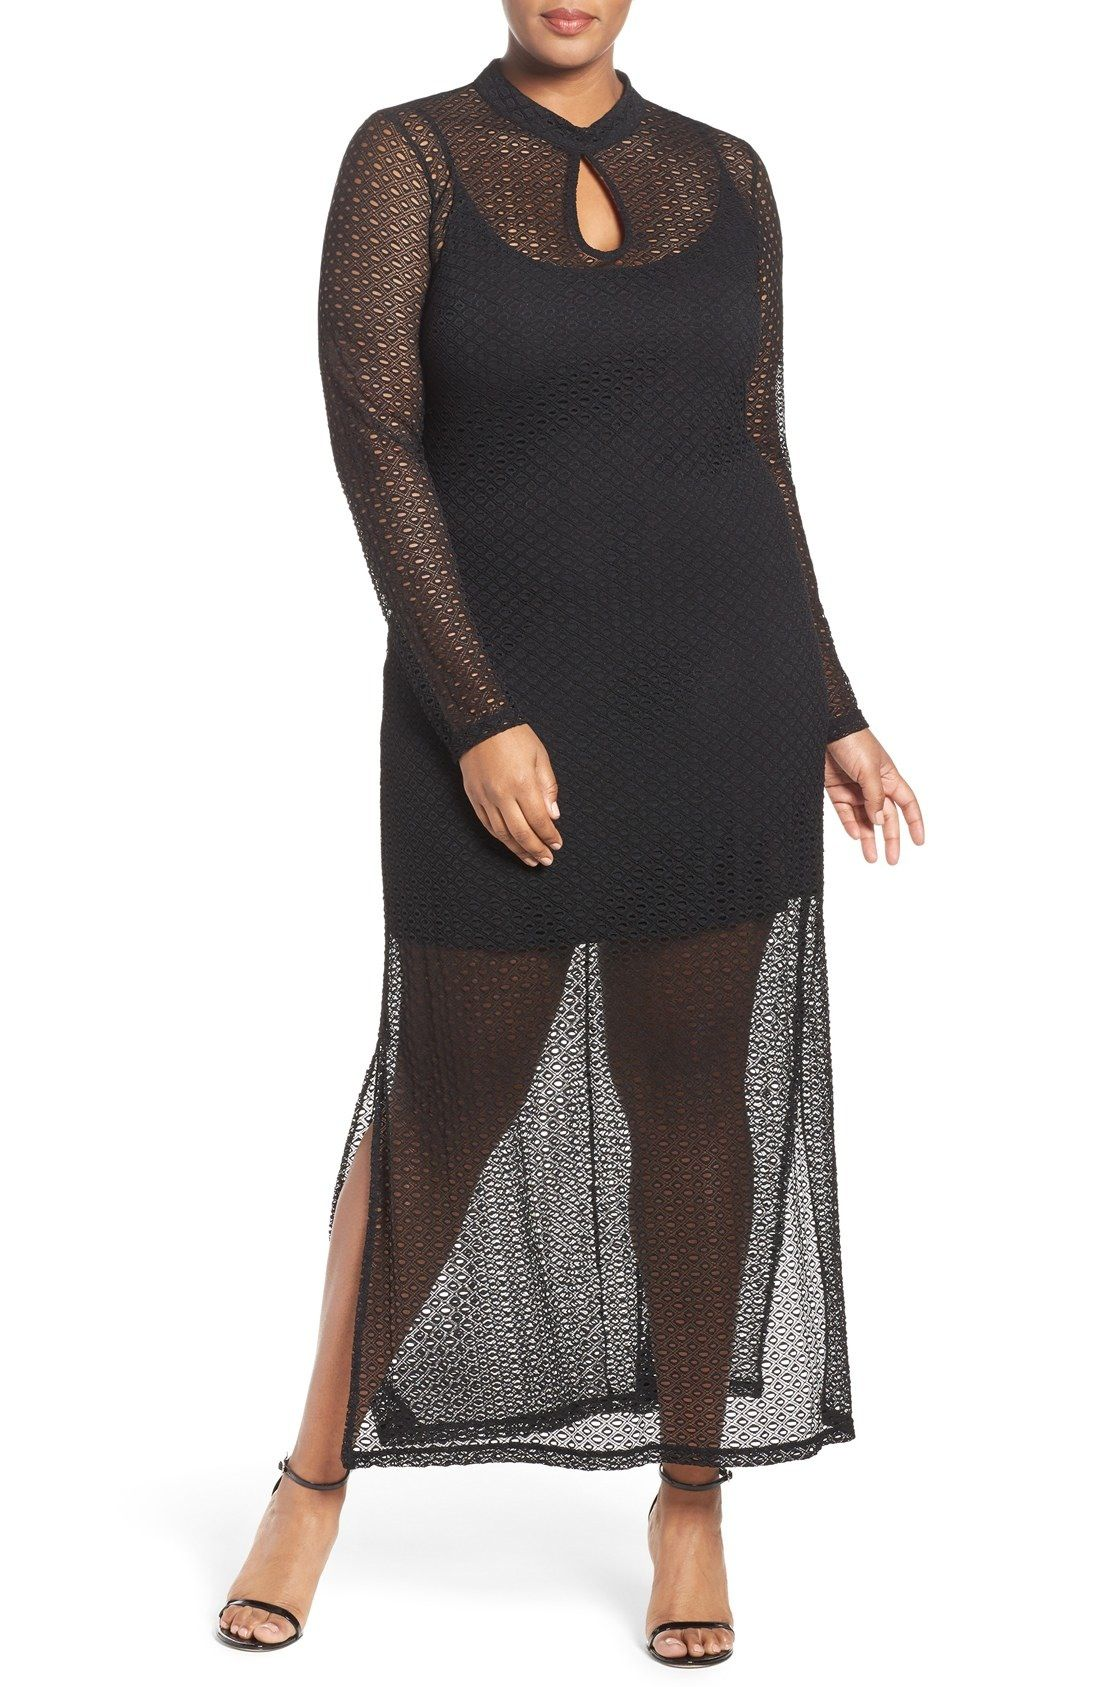 City chic lady luxe maxi dress plus size nordstrom